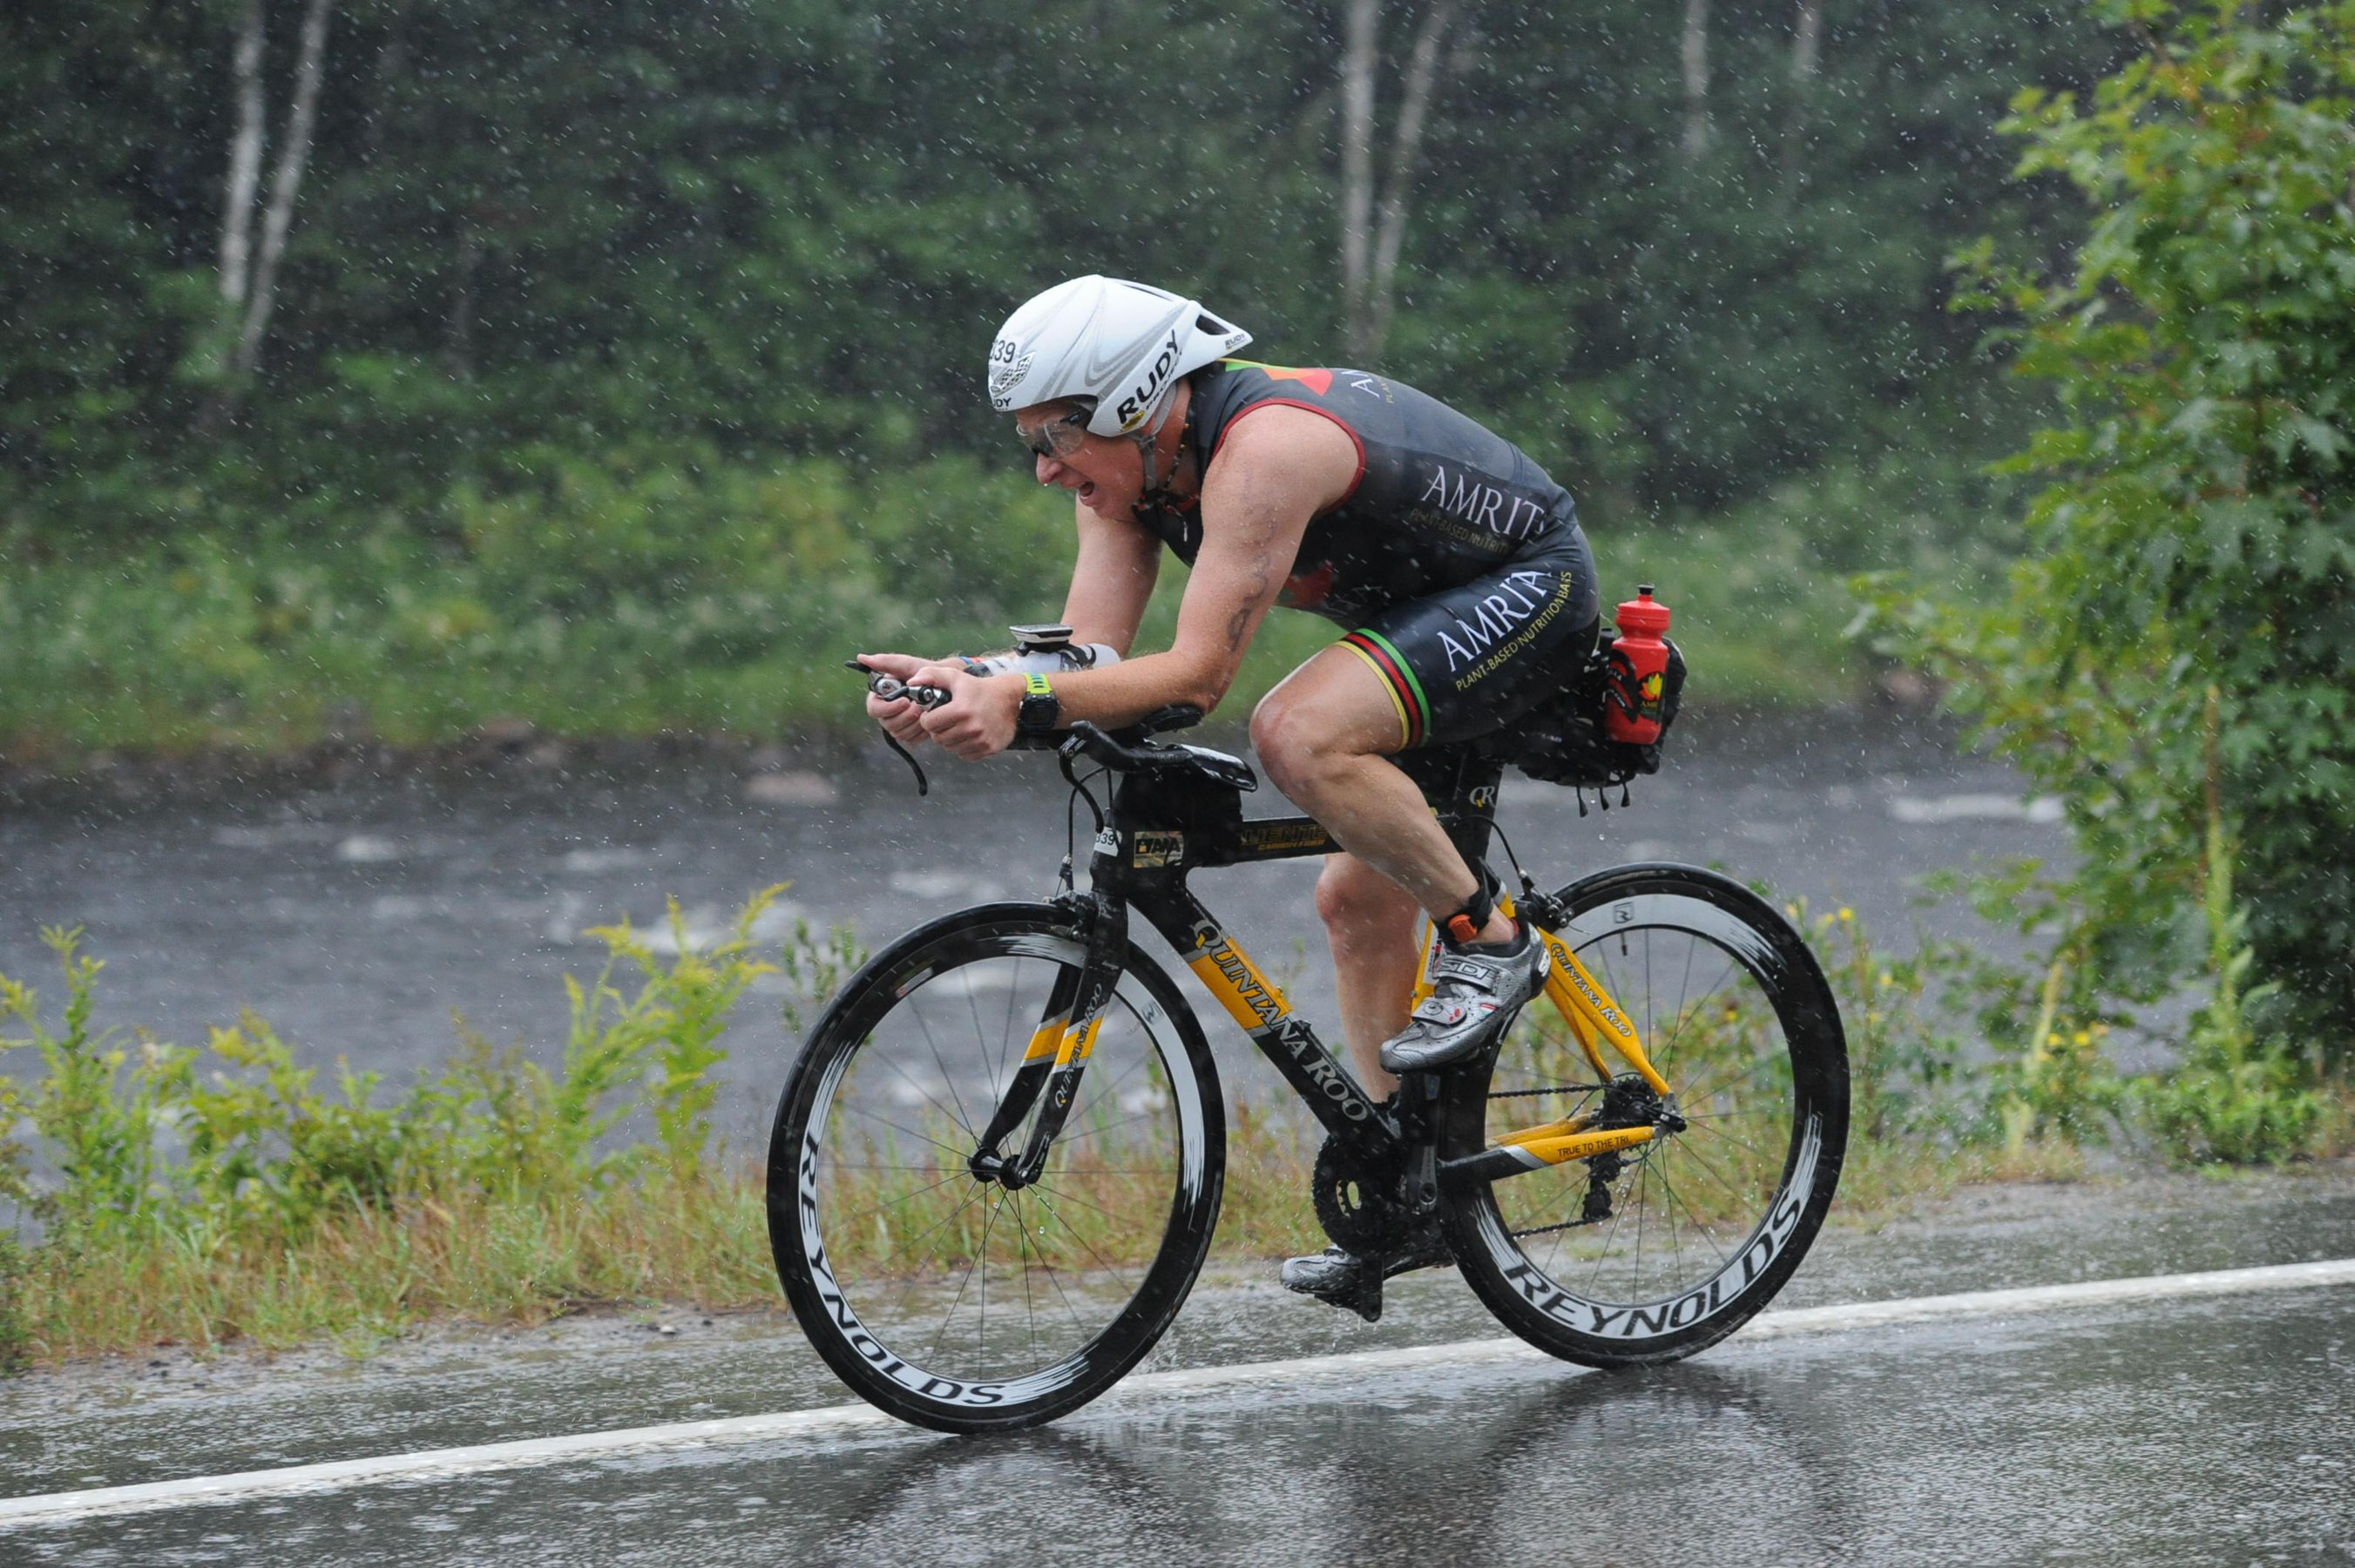 Ironman Mont-Tremblant 2016 - Bike - Weathering the storm!